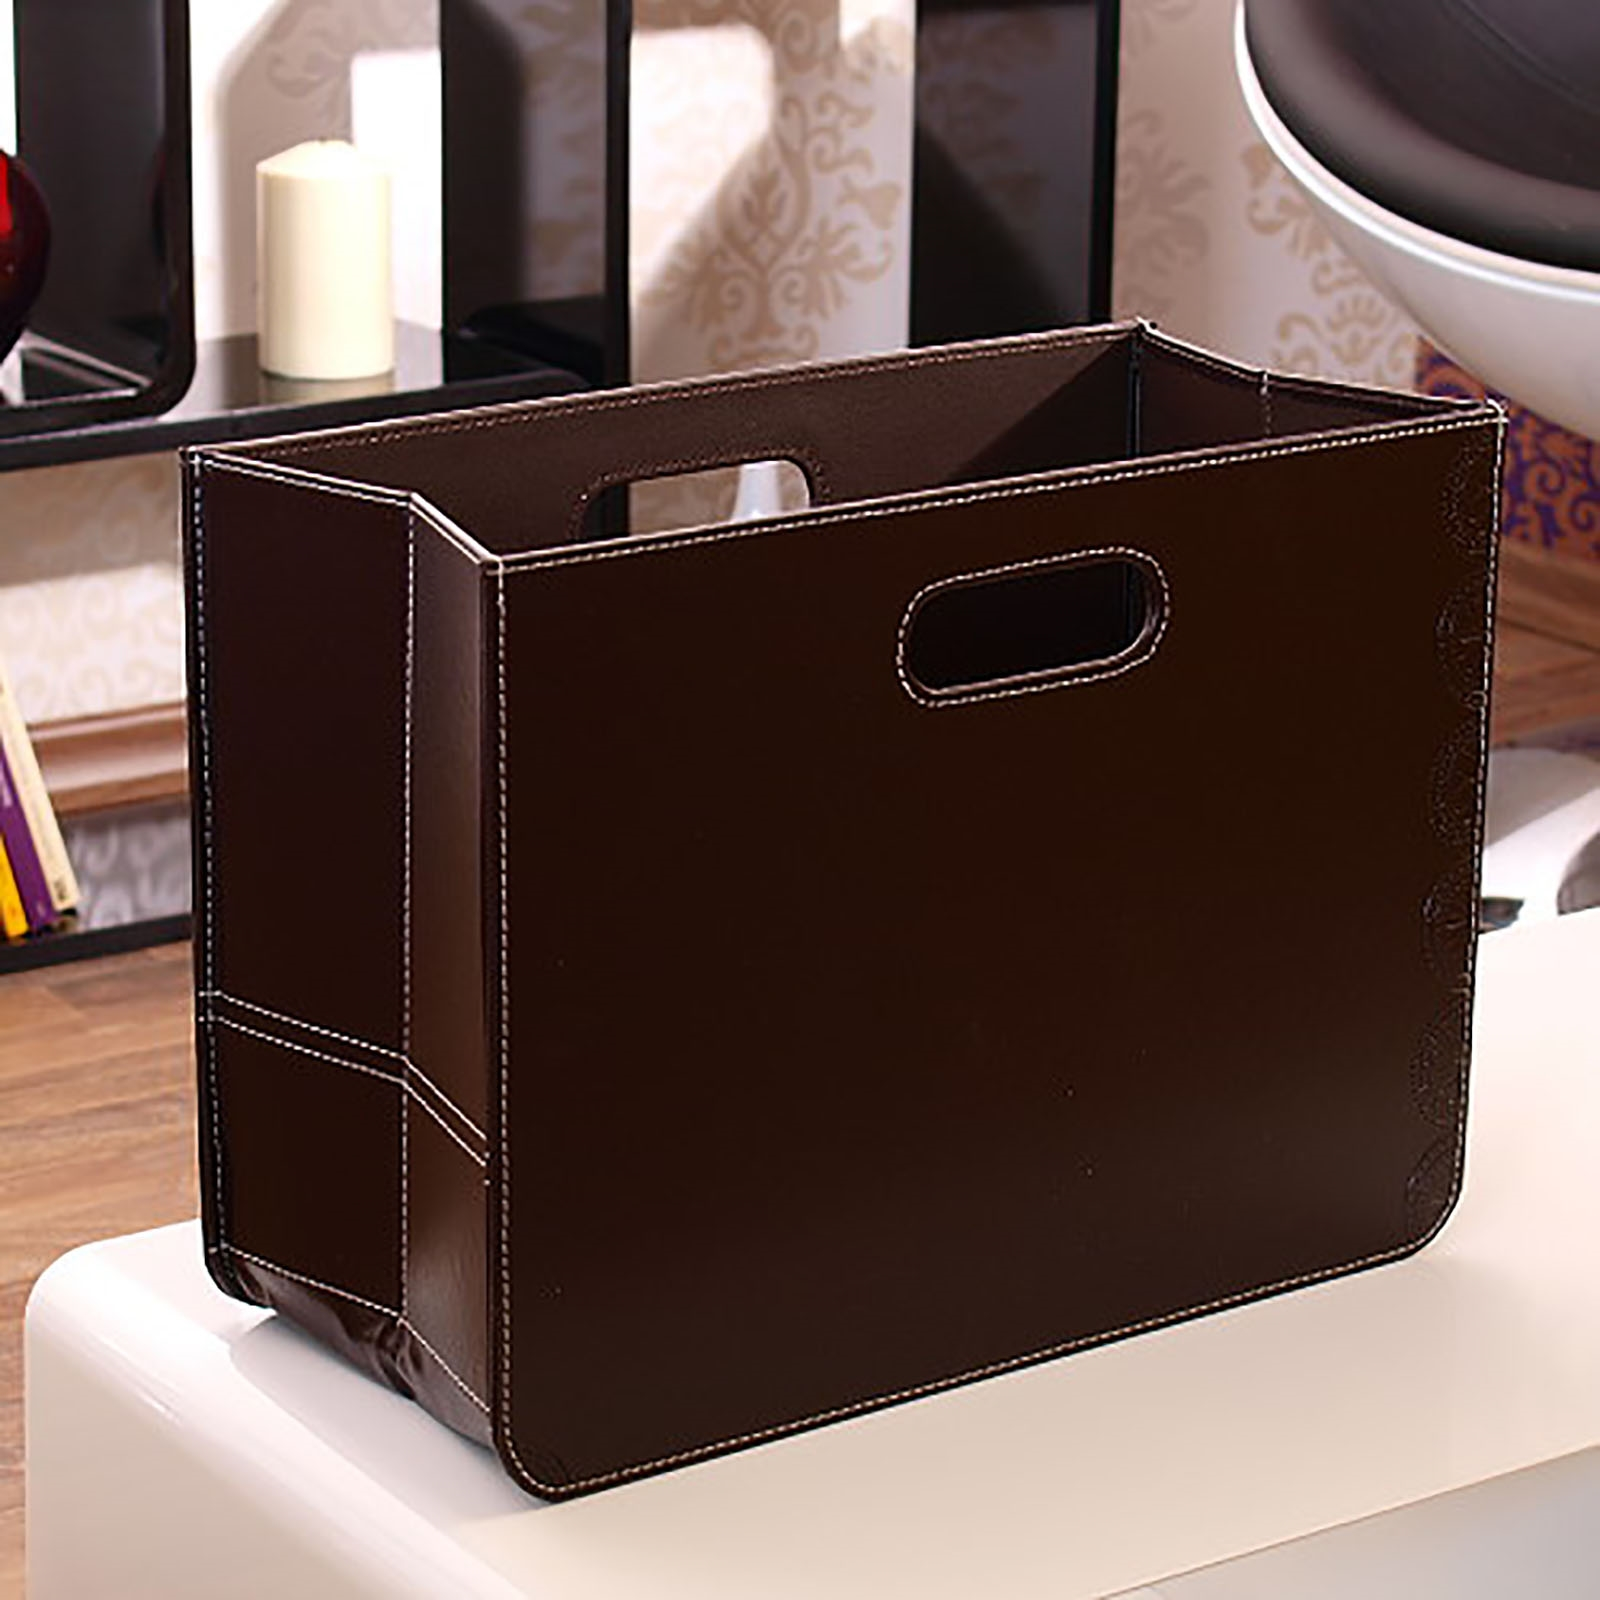 design magazine holder brown faux leather newspaper. Black Bedroom Furniture Sets. Home Design Ideas